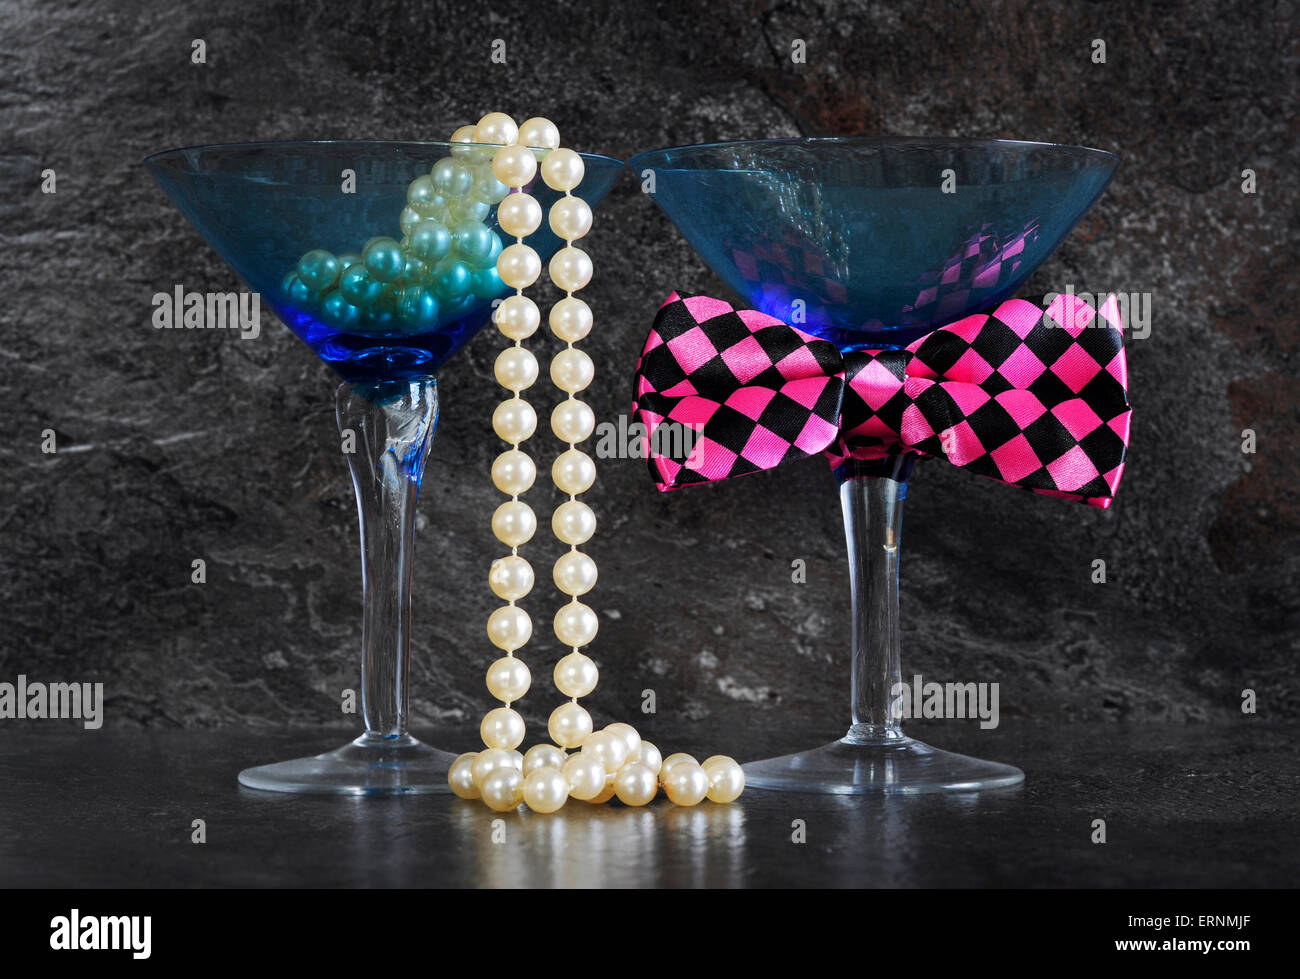 Ladies and Gentleman's vintage blue martini glasses with pearls and fun pink check bow tie  on black slate background. - Stock Image